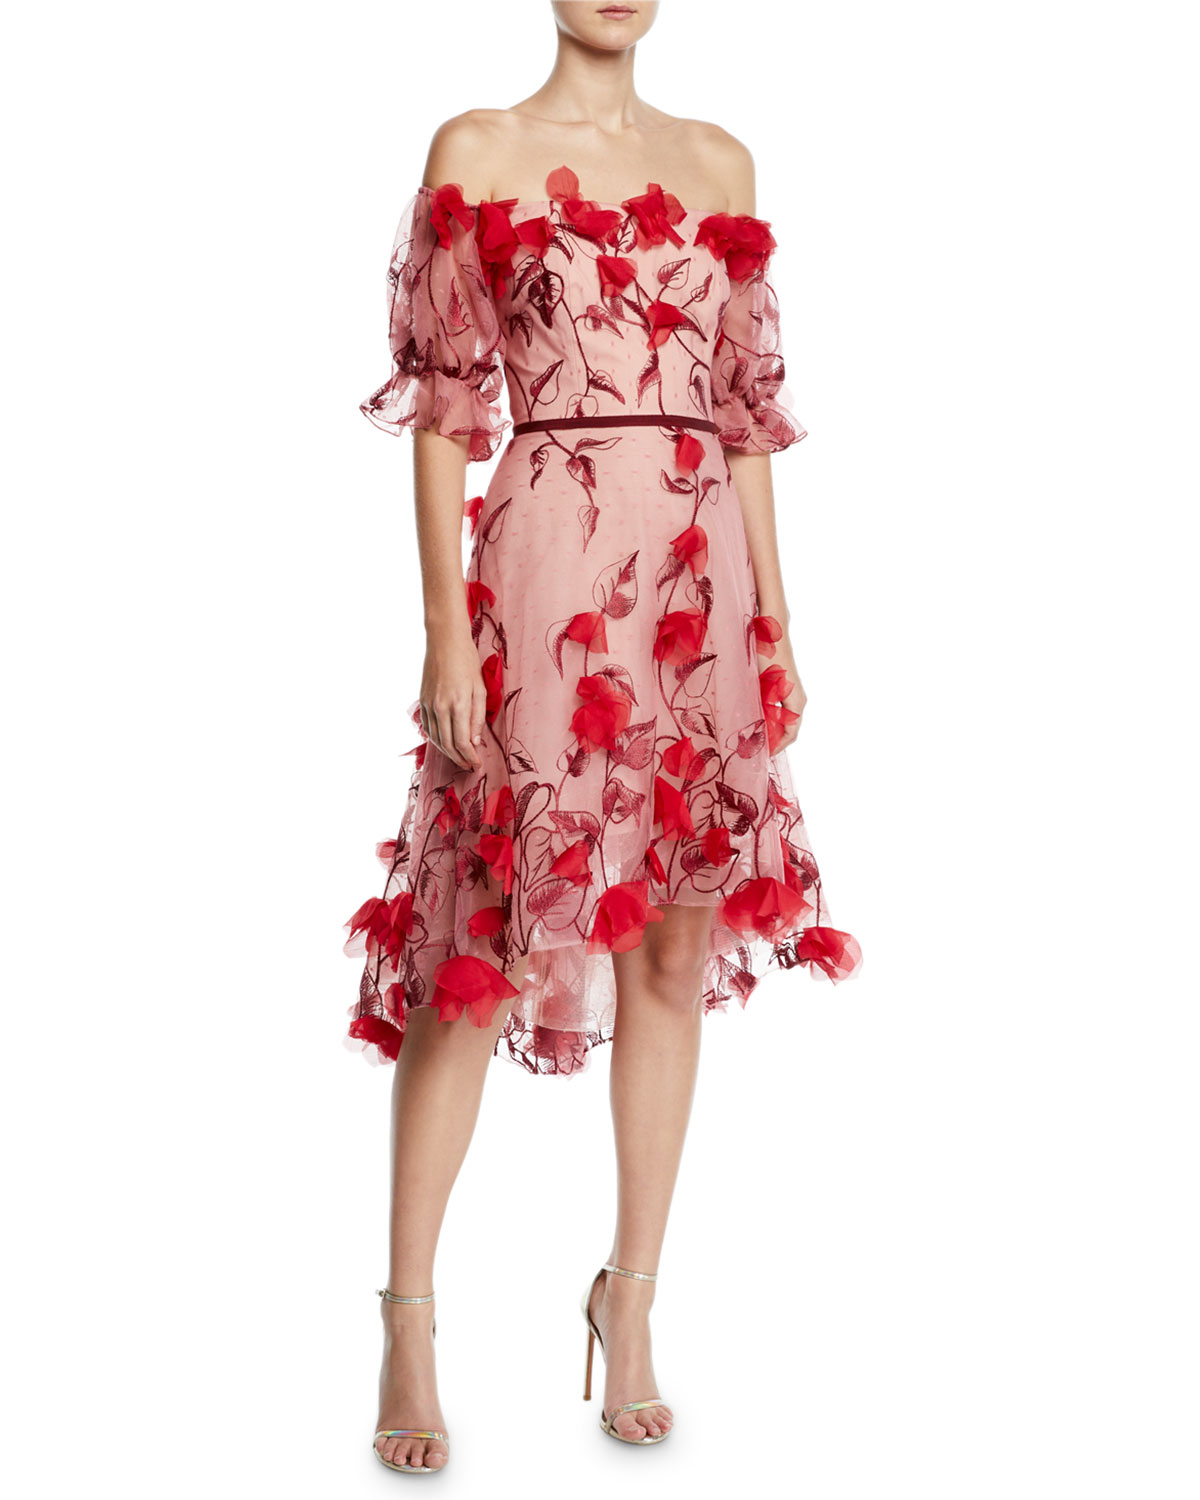 d5abd8a856 Marchesa Notte Off-the-Shoulder 3D Floral Embroidered Cocktail Dress ...